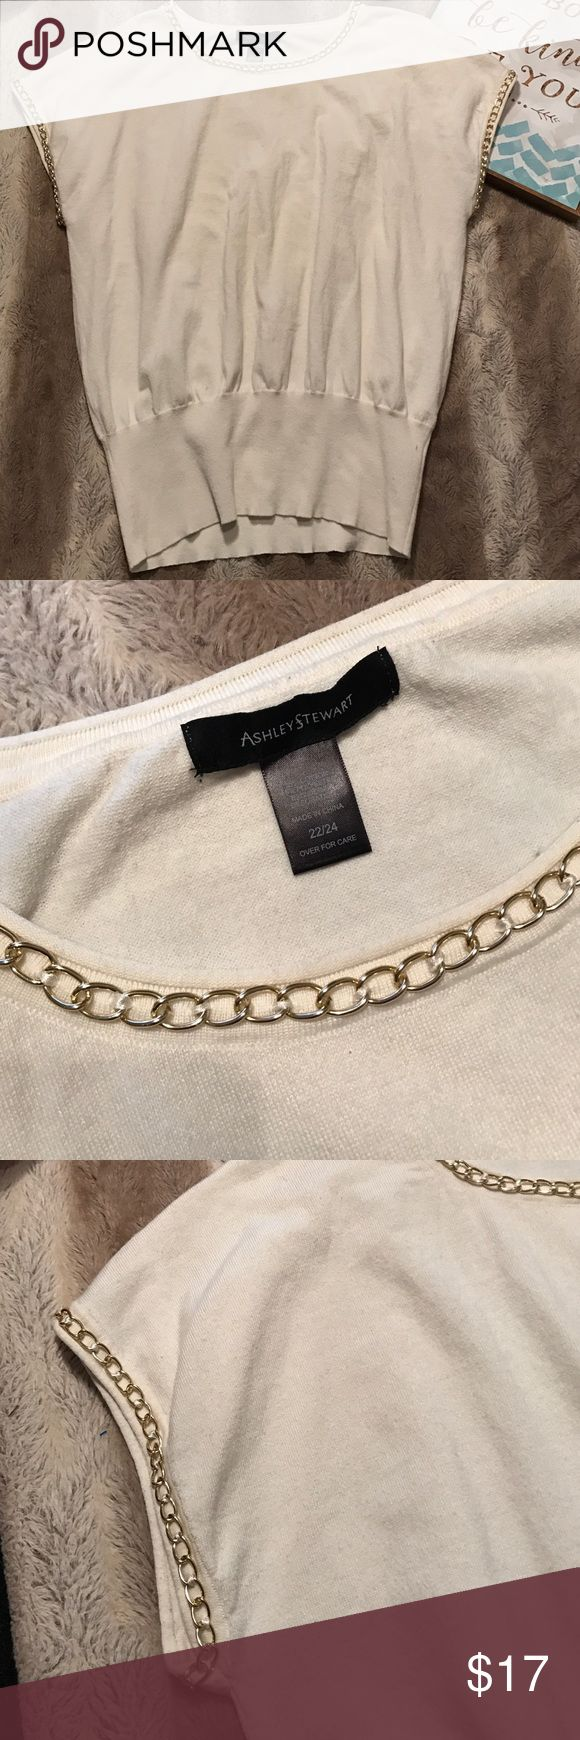 Ashley Stewart light sweater shirt. Size 22/24 This cream short sleeve shirt has chain embellishment around arm and neckline. This shirt has a few small snags (pictures included) If you have any questions please let me know. W Ashley Stewart Tops Blouses